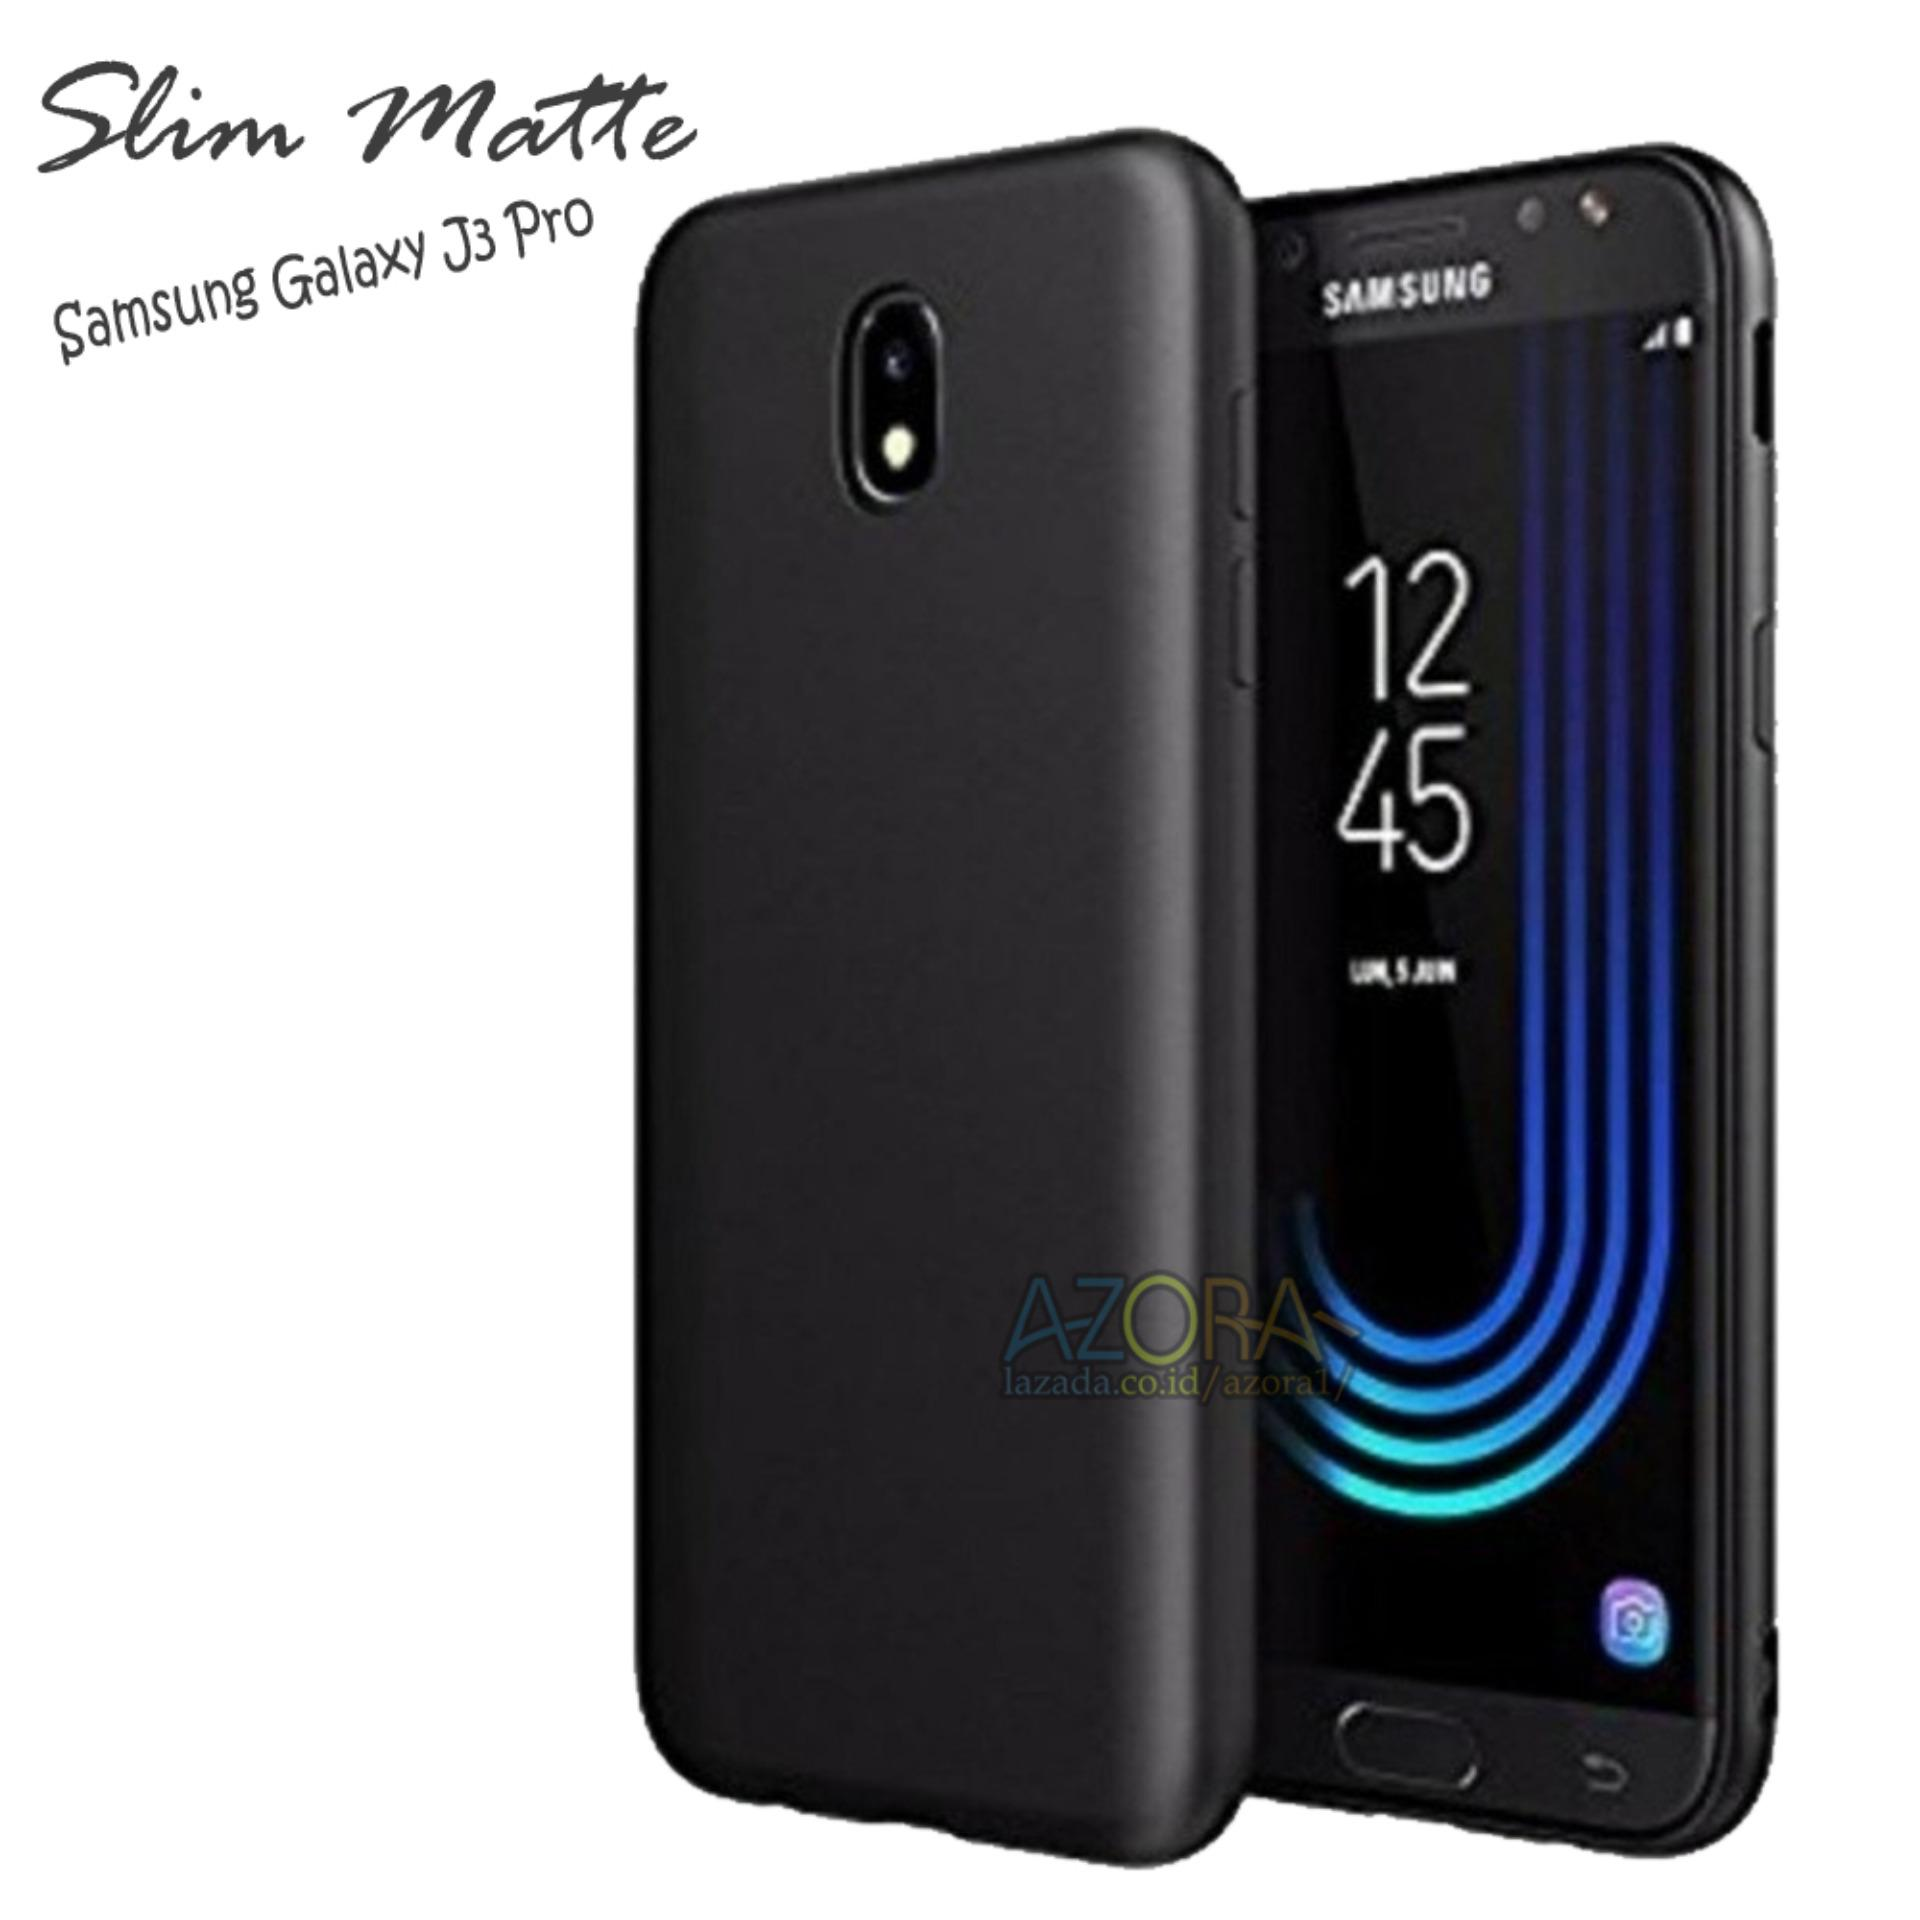 Case Slim Black Matte Samsung Galaxy J3 Pro Baby Skin Softcase Ultra Thin Jelly Silikon Babyskin